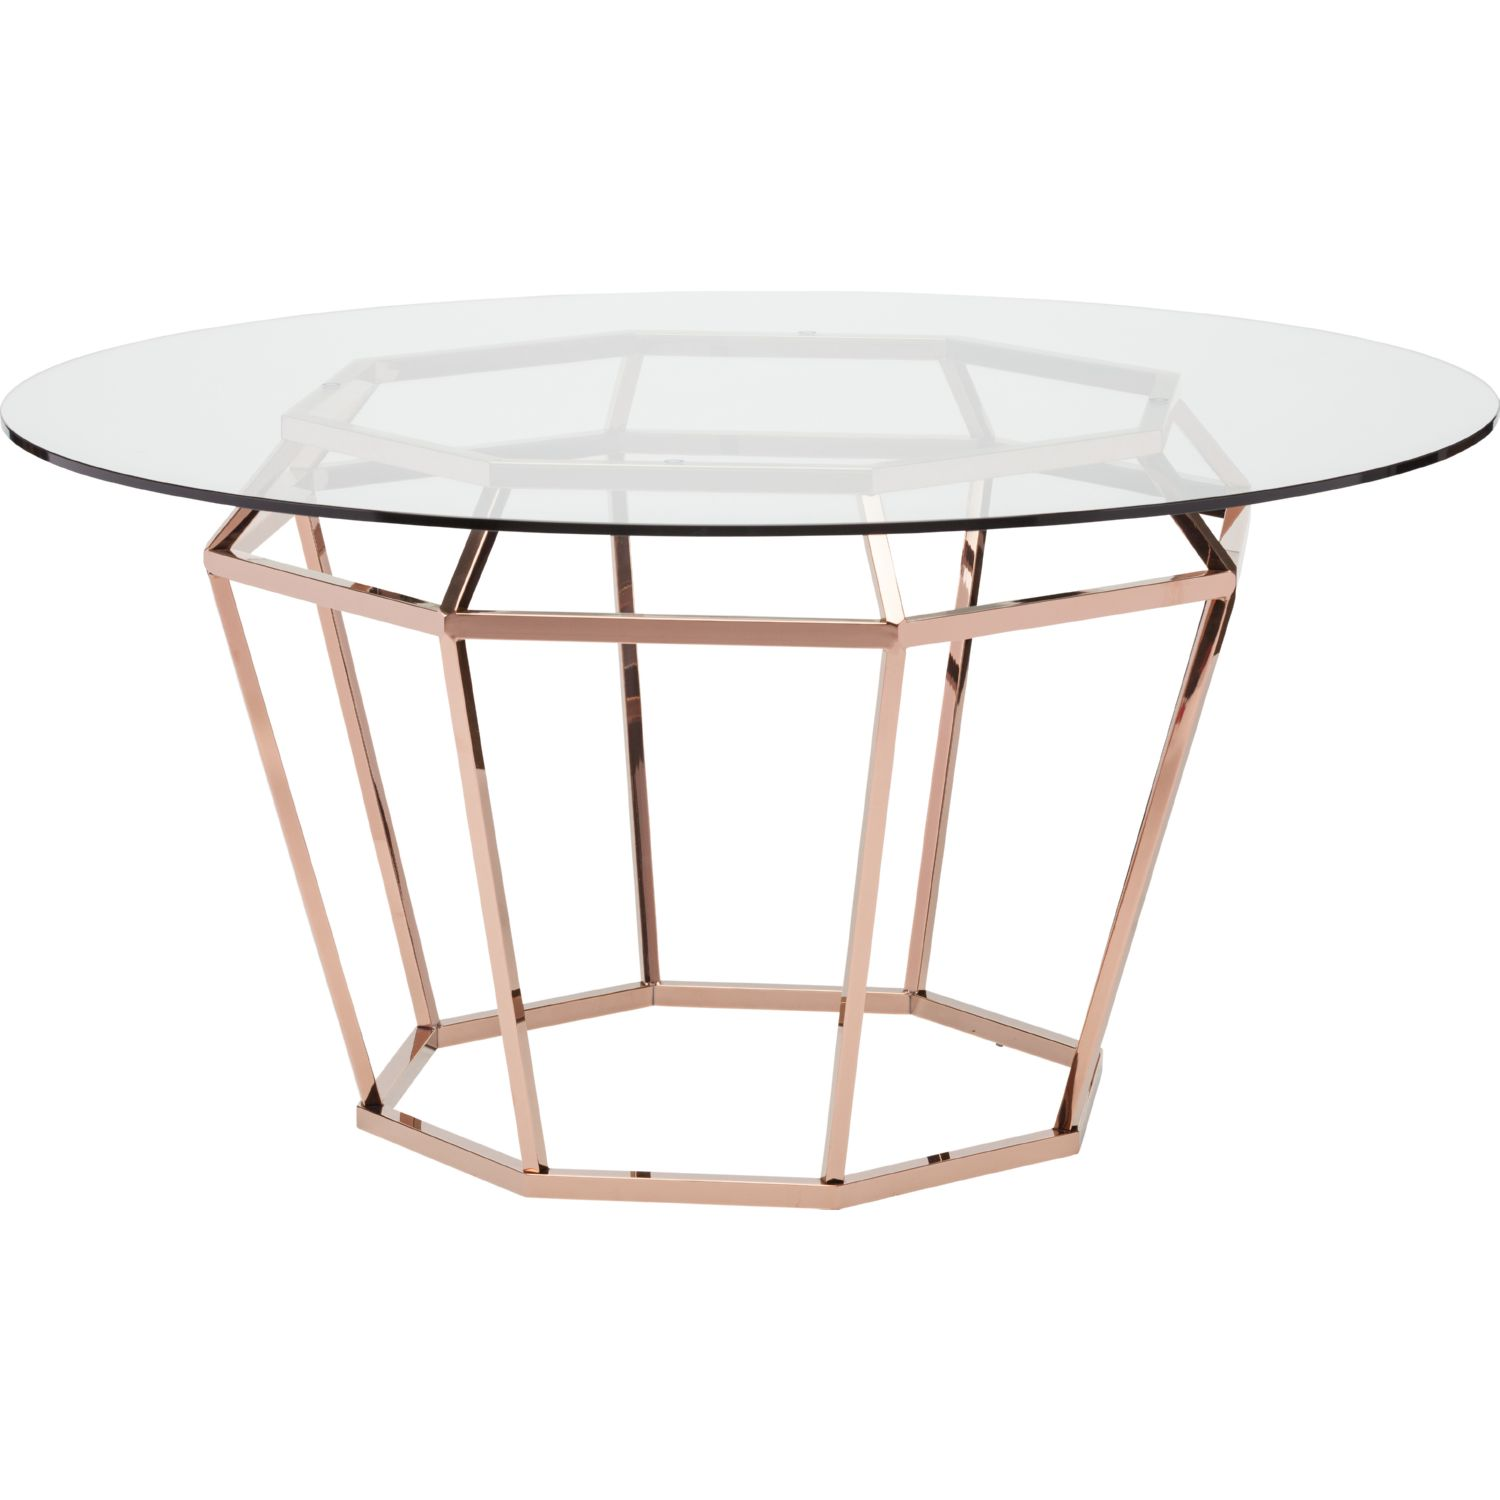 natal chrome and glass sofa table best fabric for toddlers stainless steel coffee tables bindu bhatia